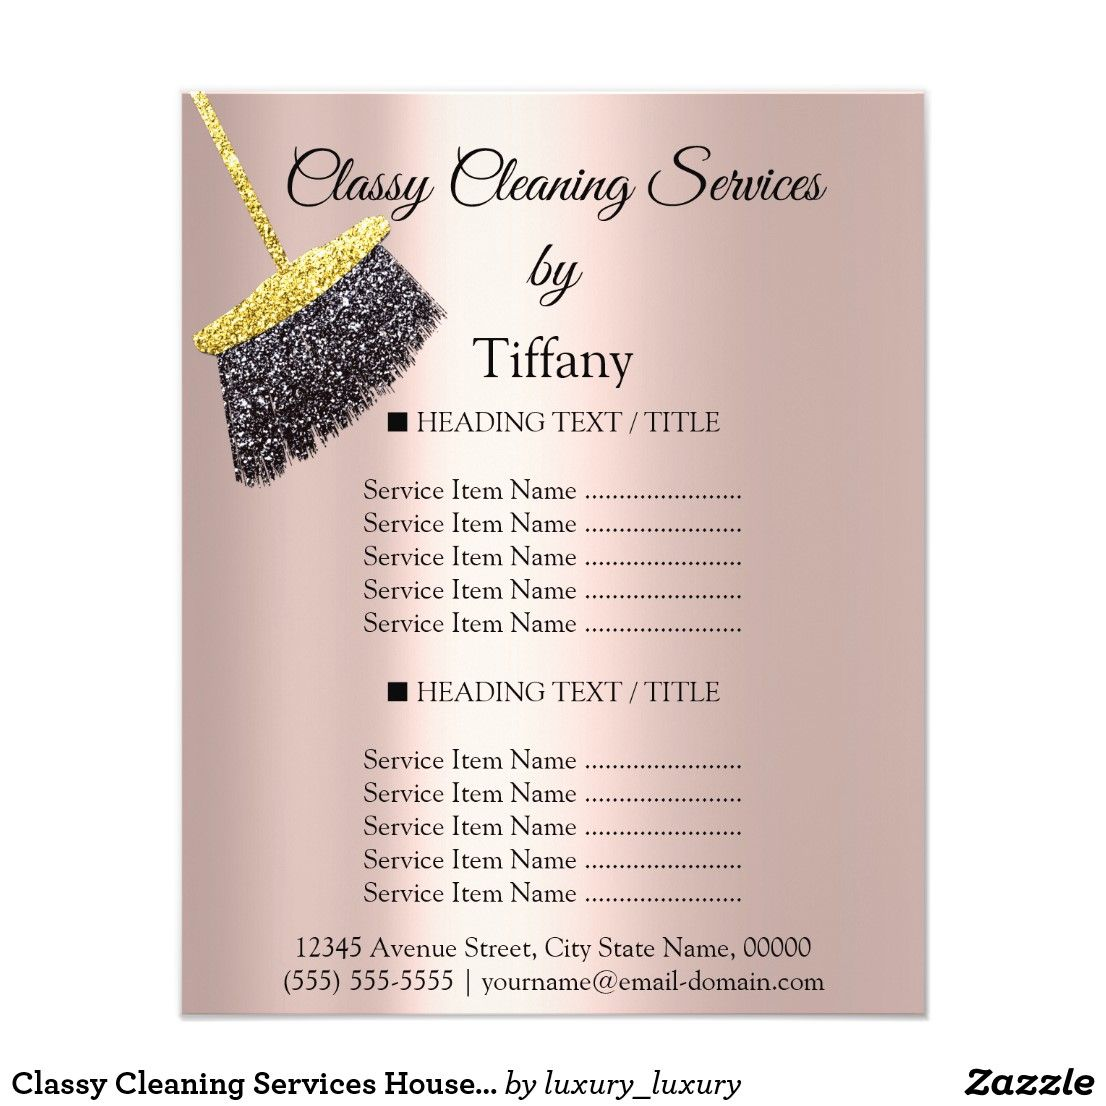 Classy cleaning services house keeping maid price flyer